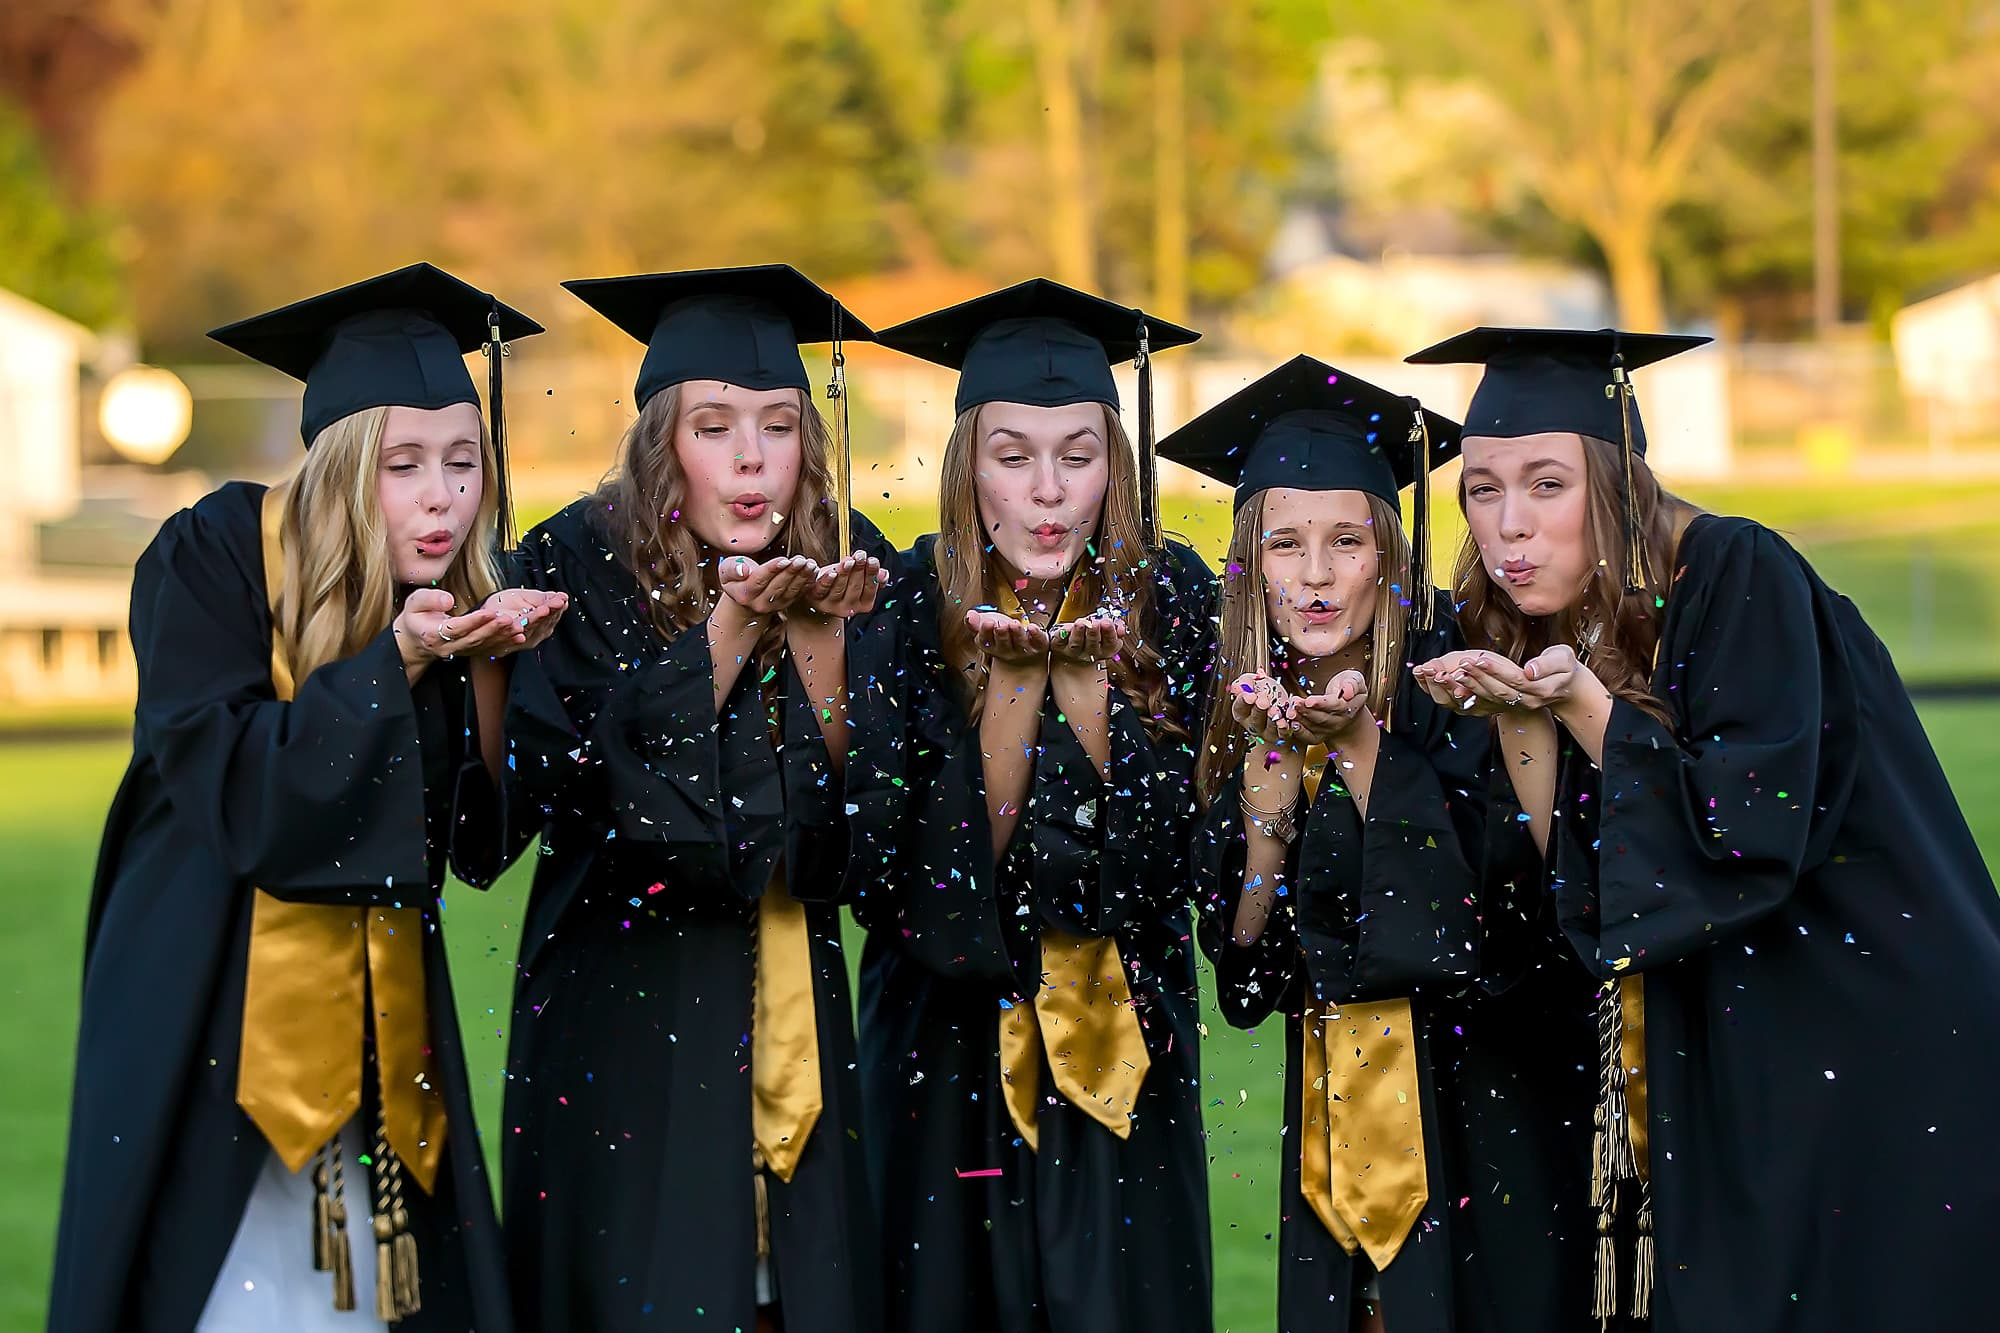 senior portraits; girls in graduation gowns blowing glitter